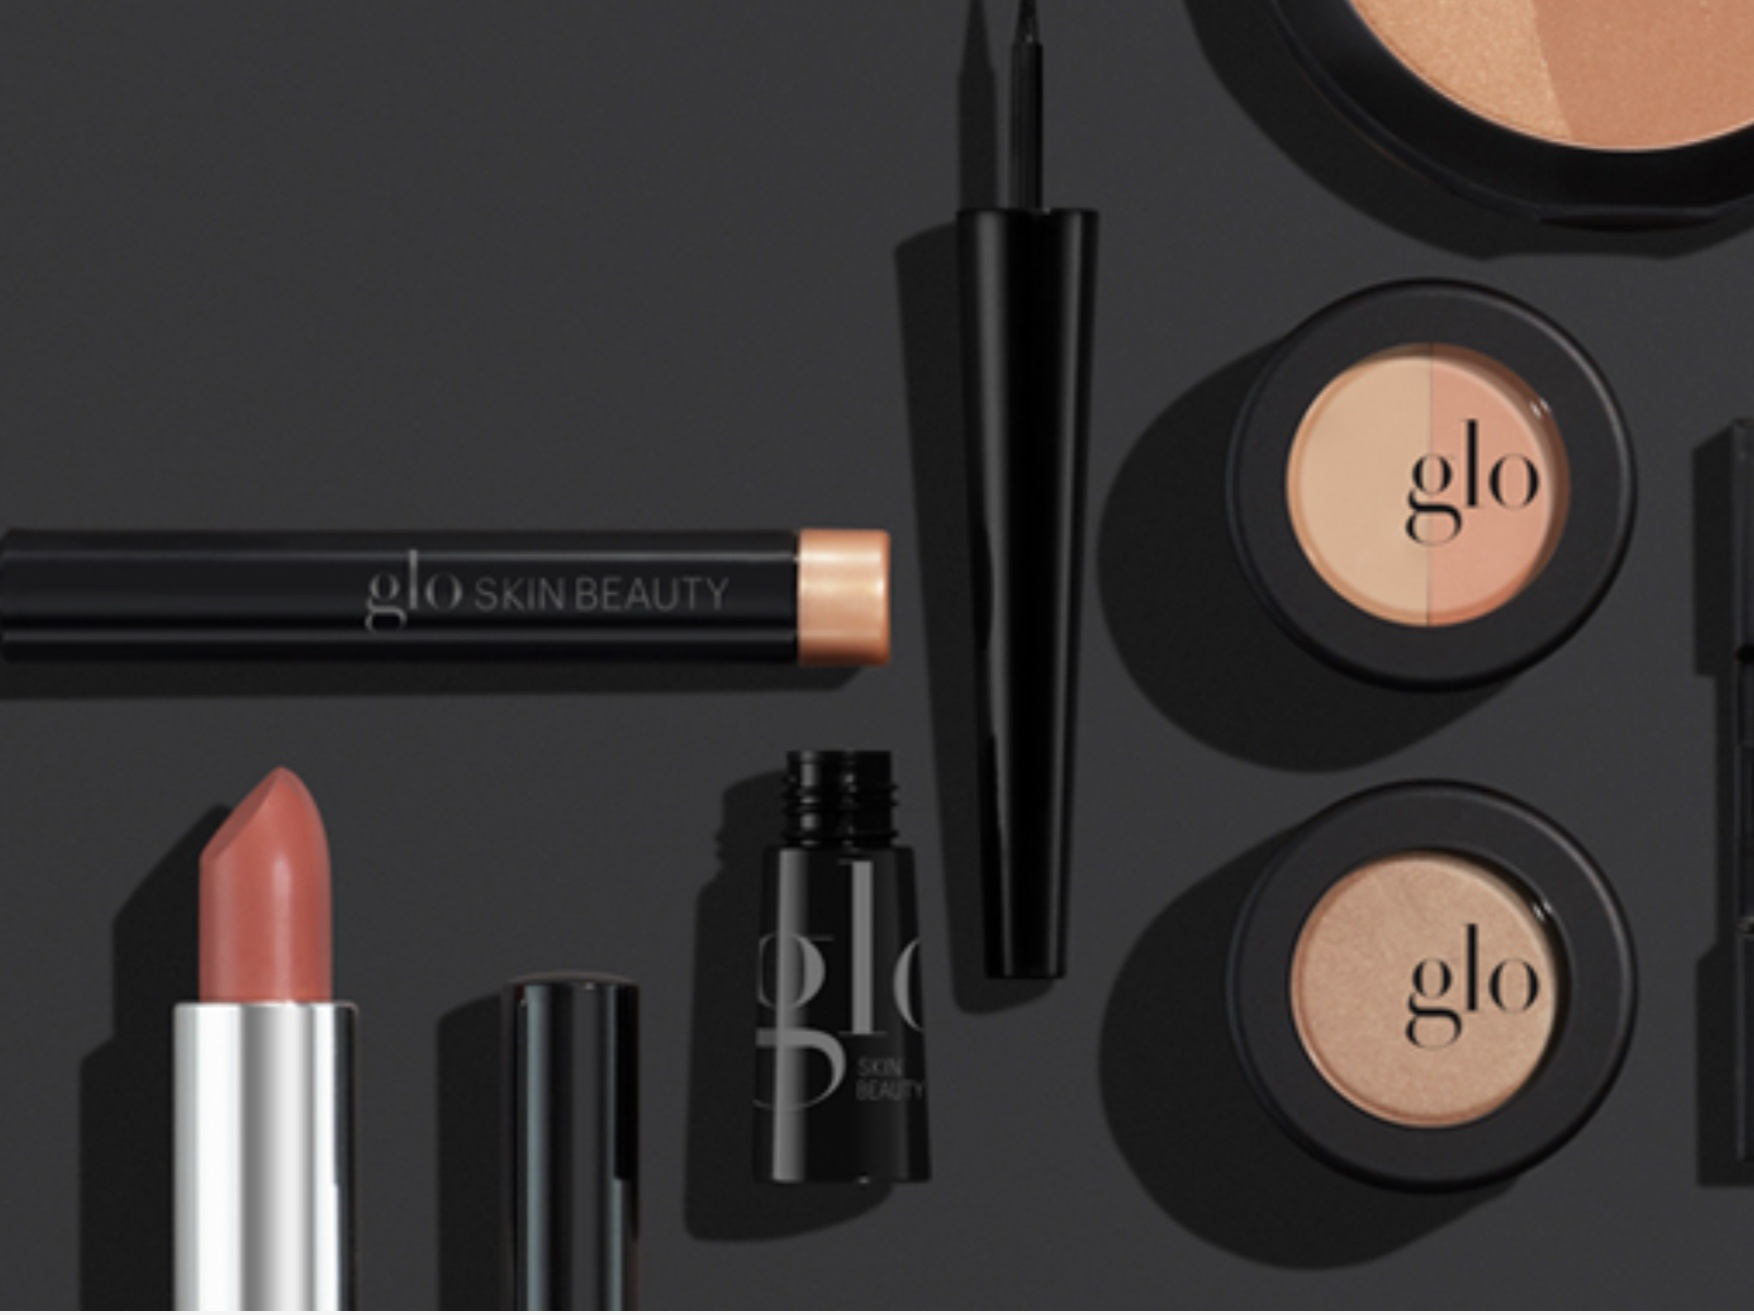 Medical Grade Cosmetics - We consider medical grade makeup as an extension of your skincare routine. GLO only uses ultra fine minerals.